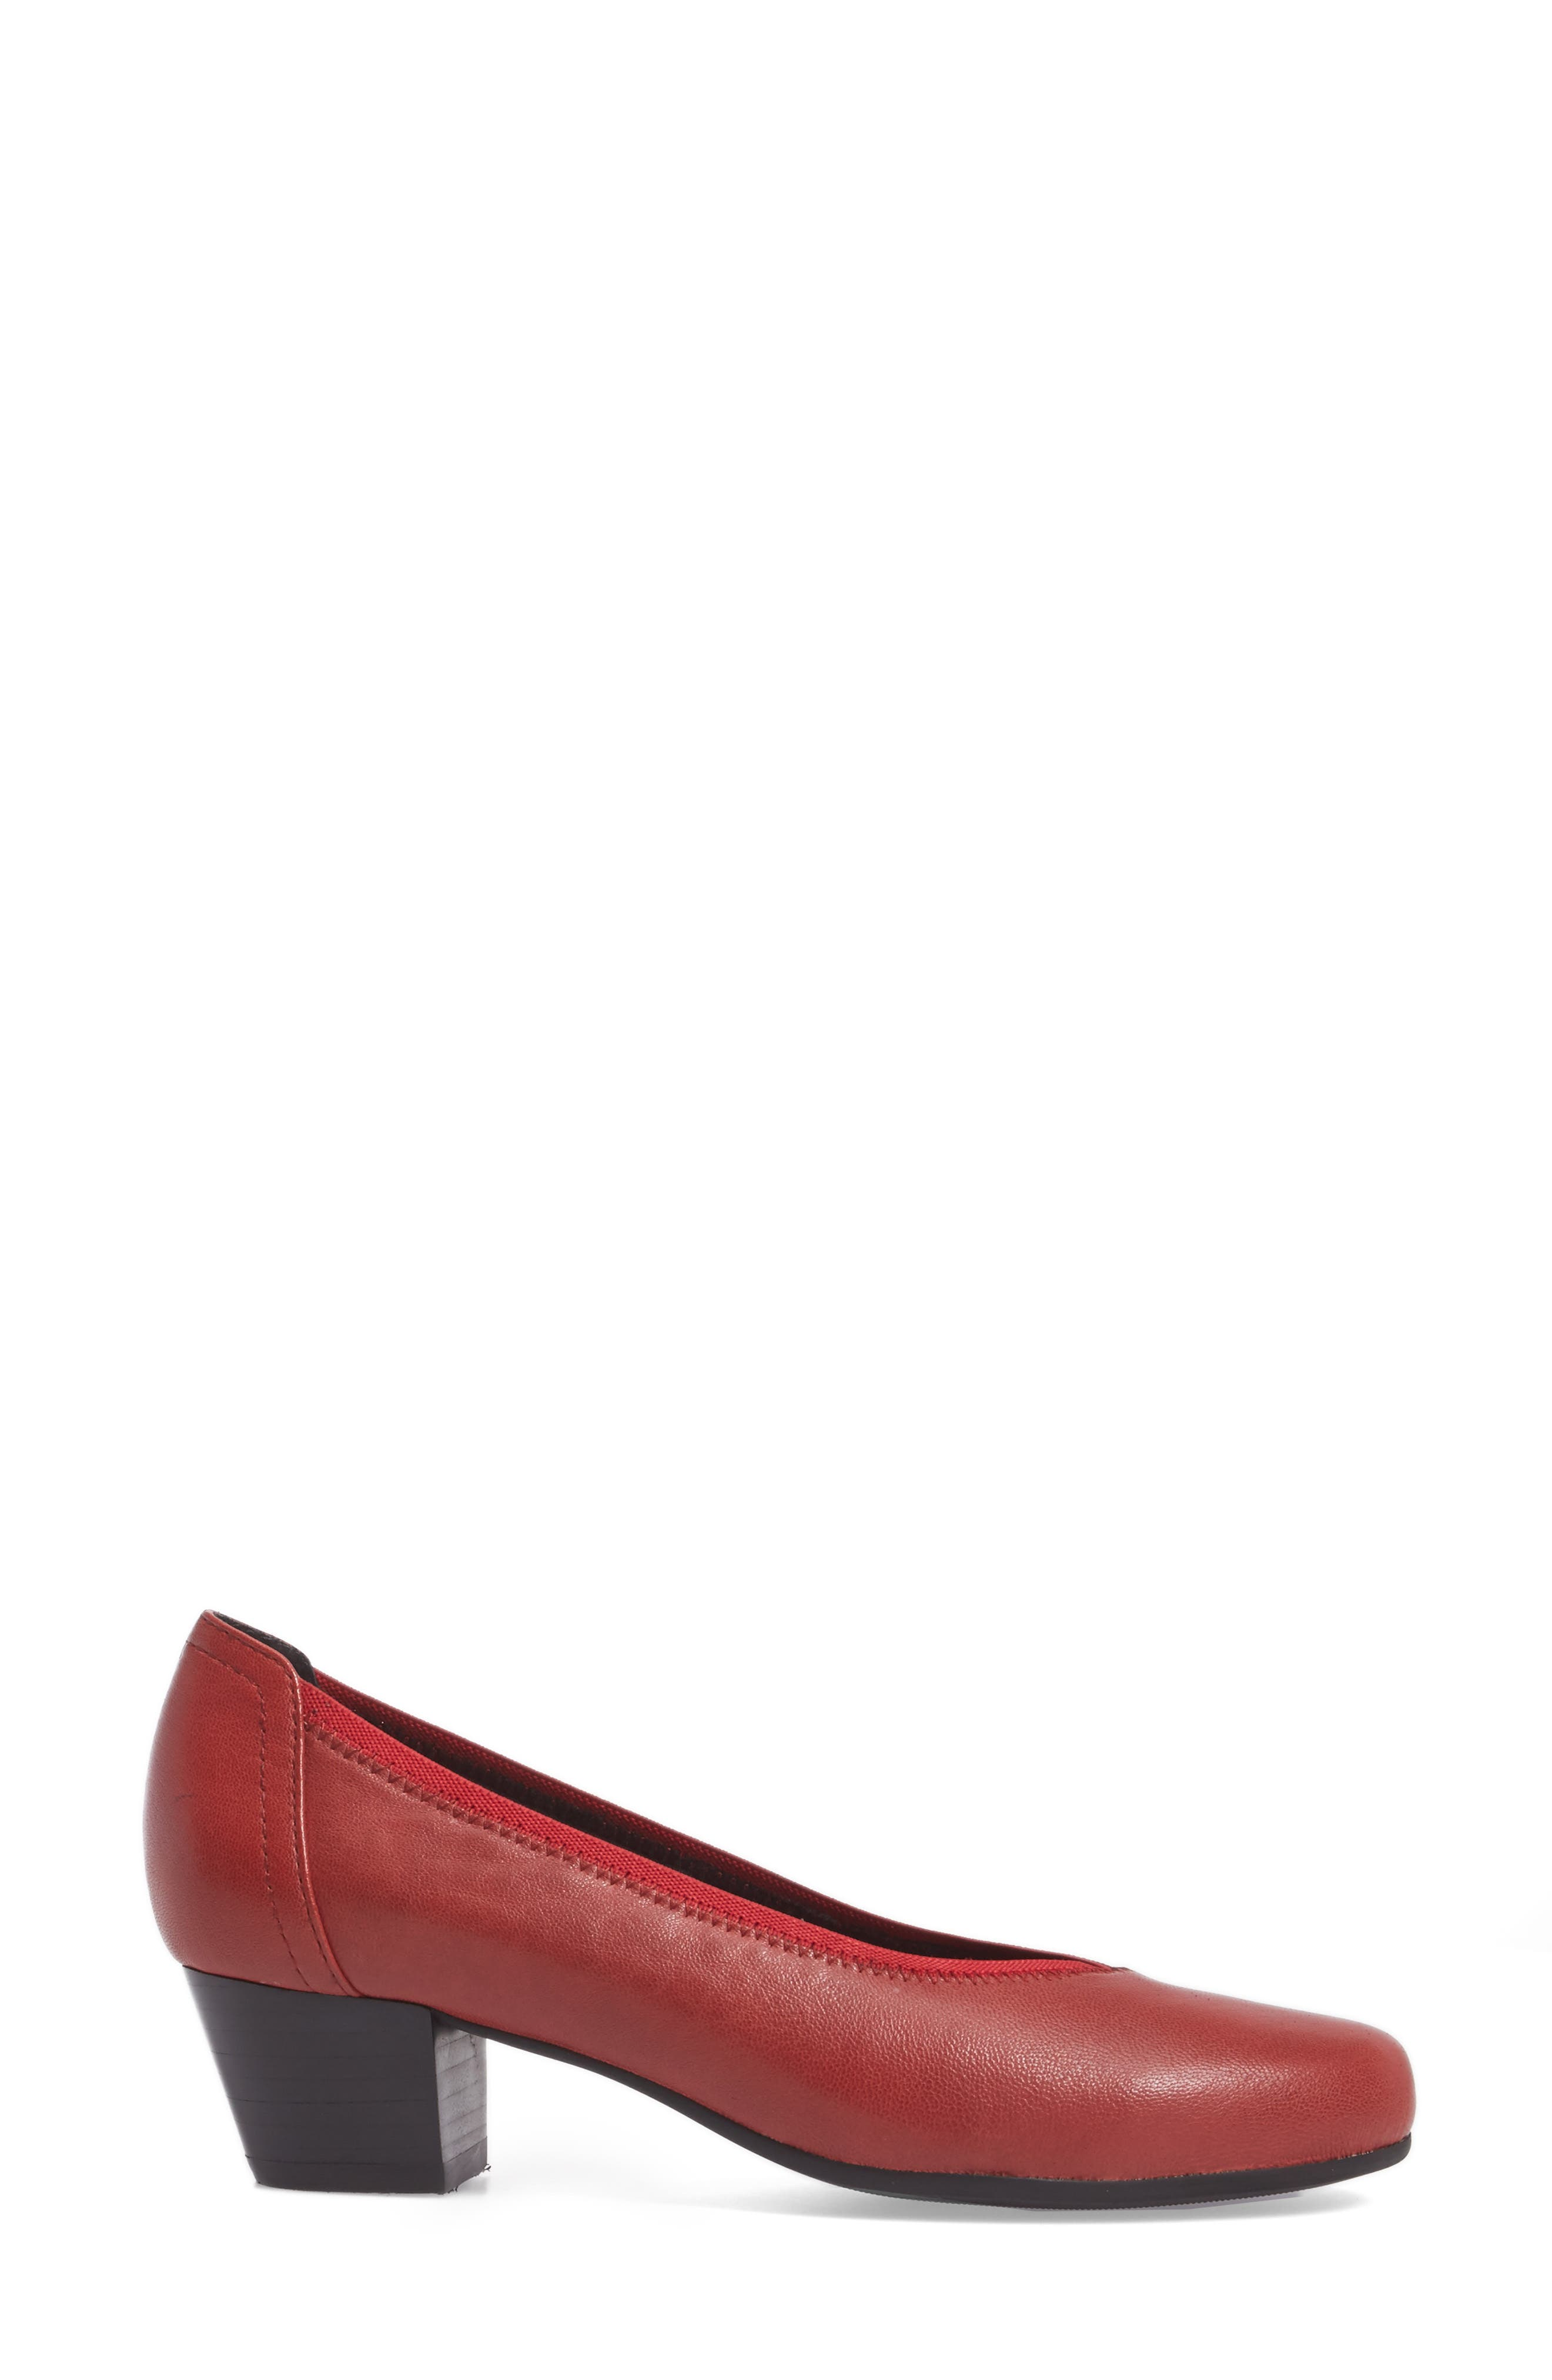 Madera Pump,                             Alternate thumbnail 3, color,                             Red Leather